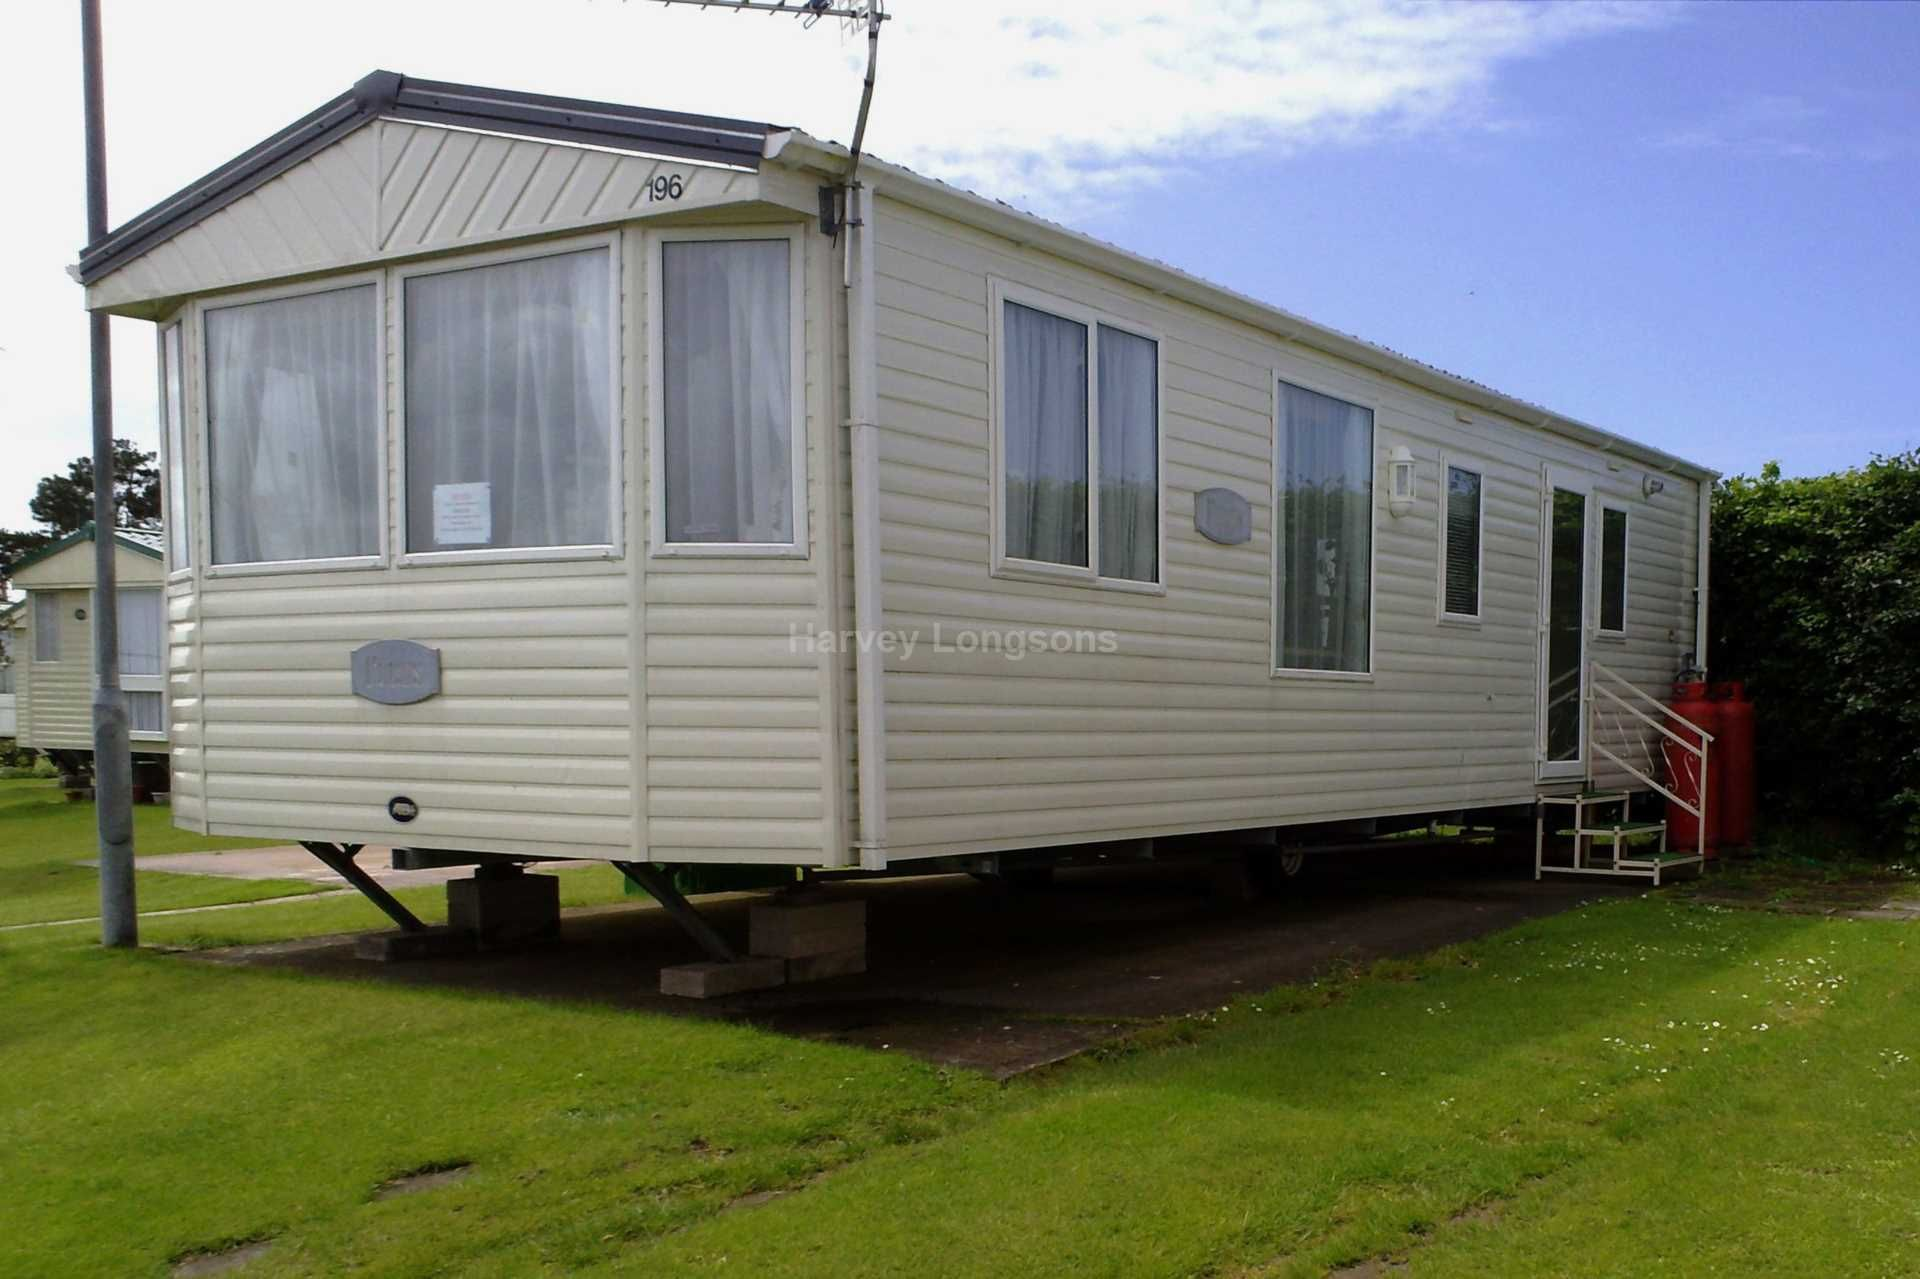 Used Mobile Homes For Sale Near Me Prefab Cabins Texas Bedroom Caravan Hastings One Mobile Grea In 2020 Used Mobile Homes Mobile Homes For Sale Luxury Mobile Homes